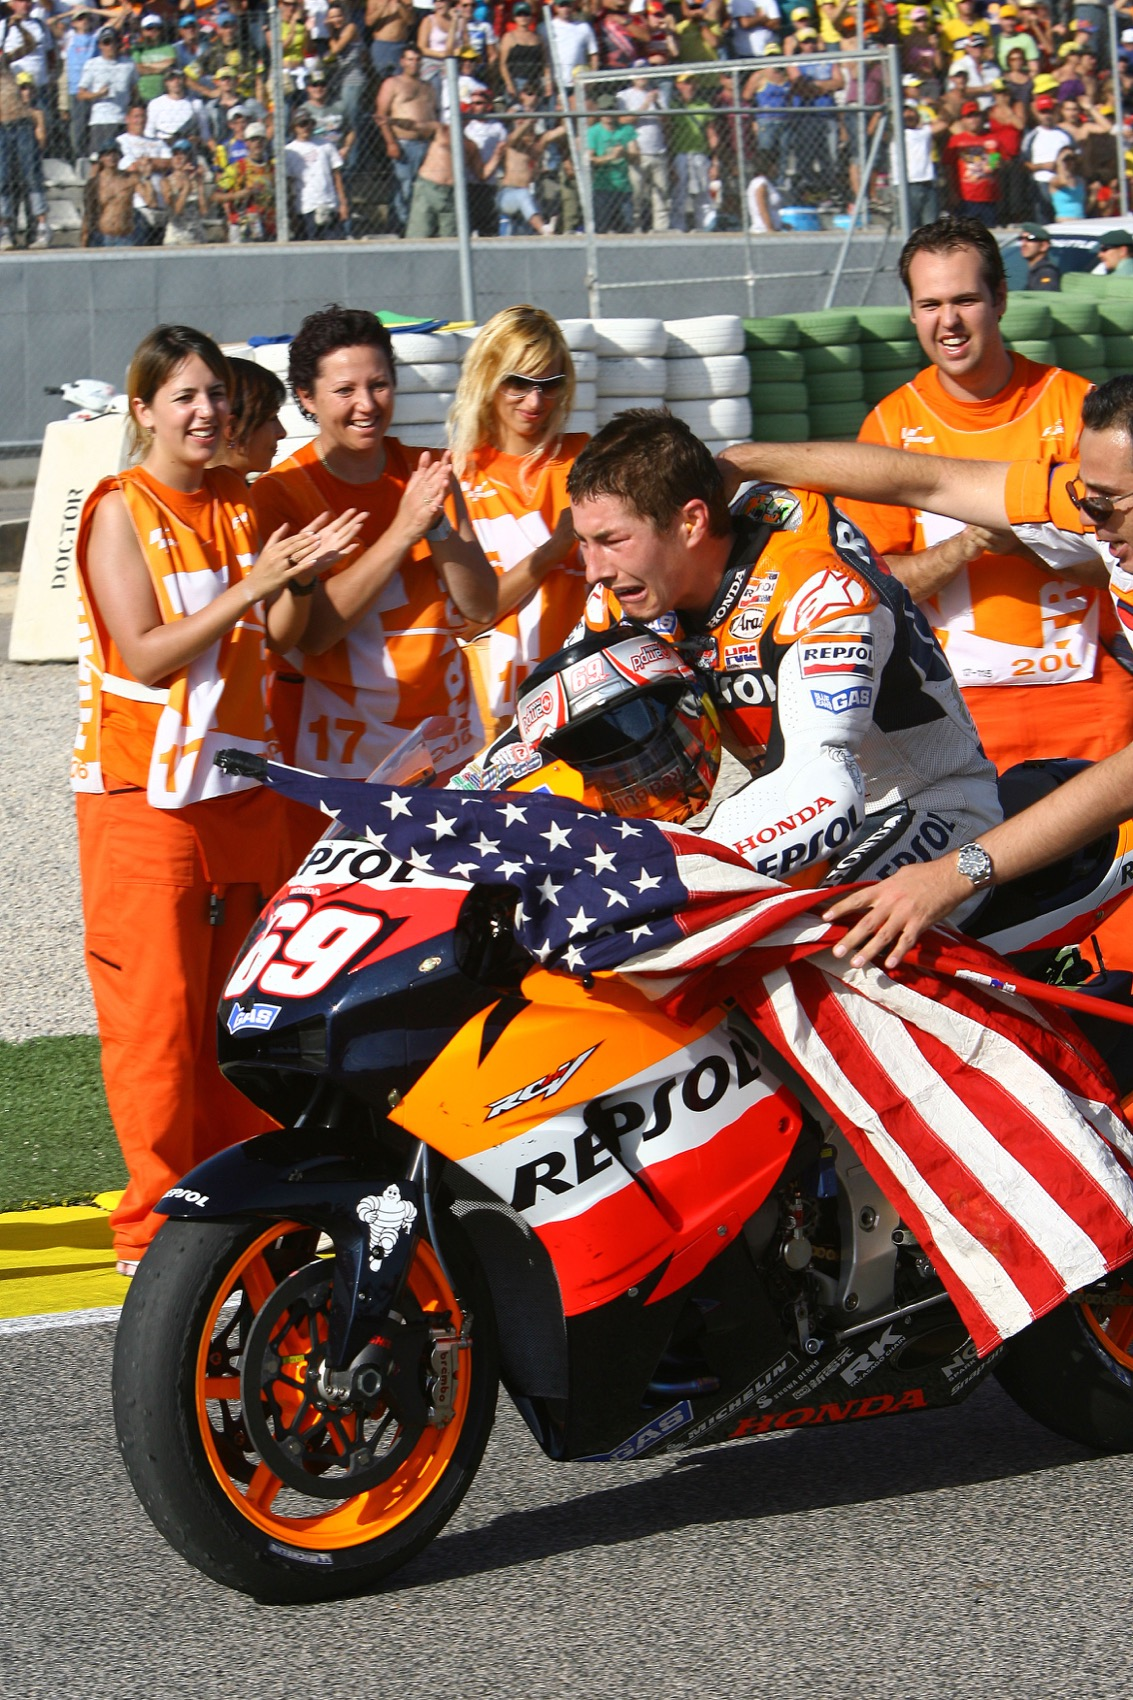 Nicky Hayden en fotos